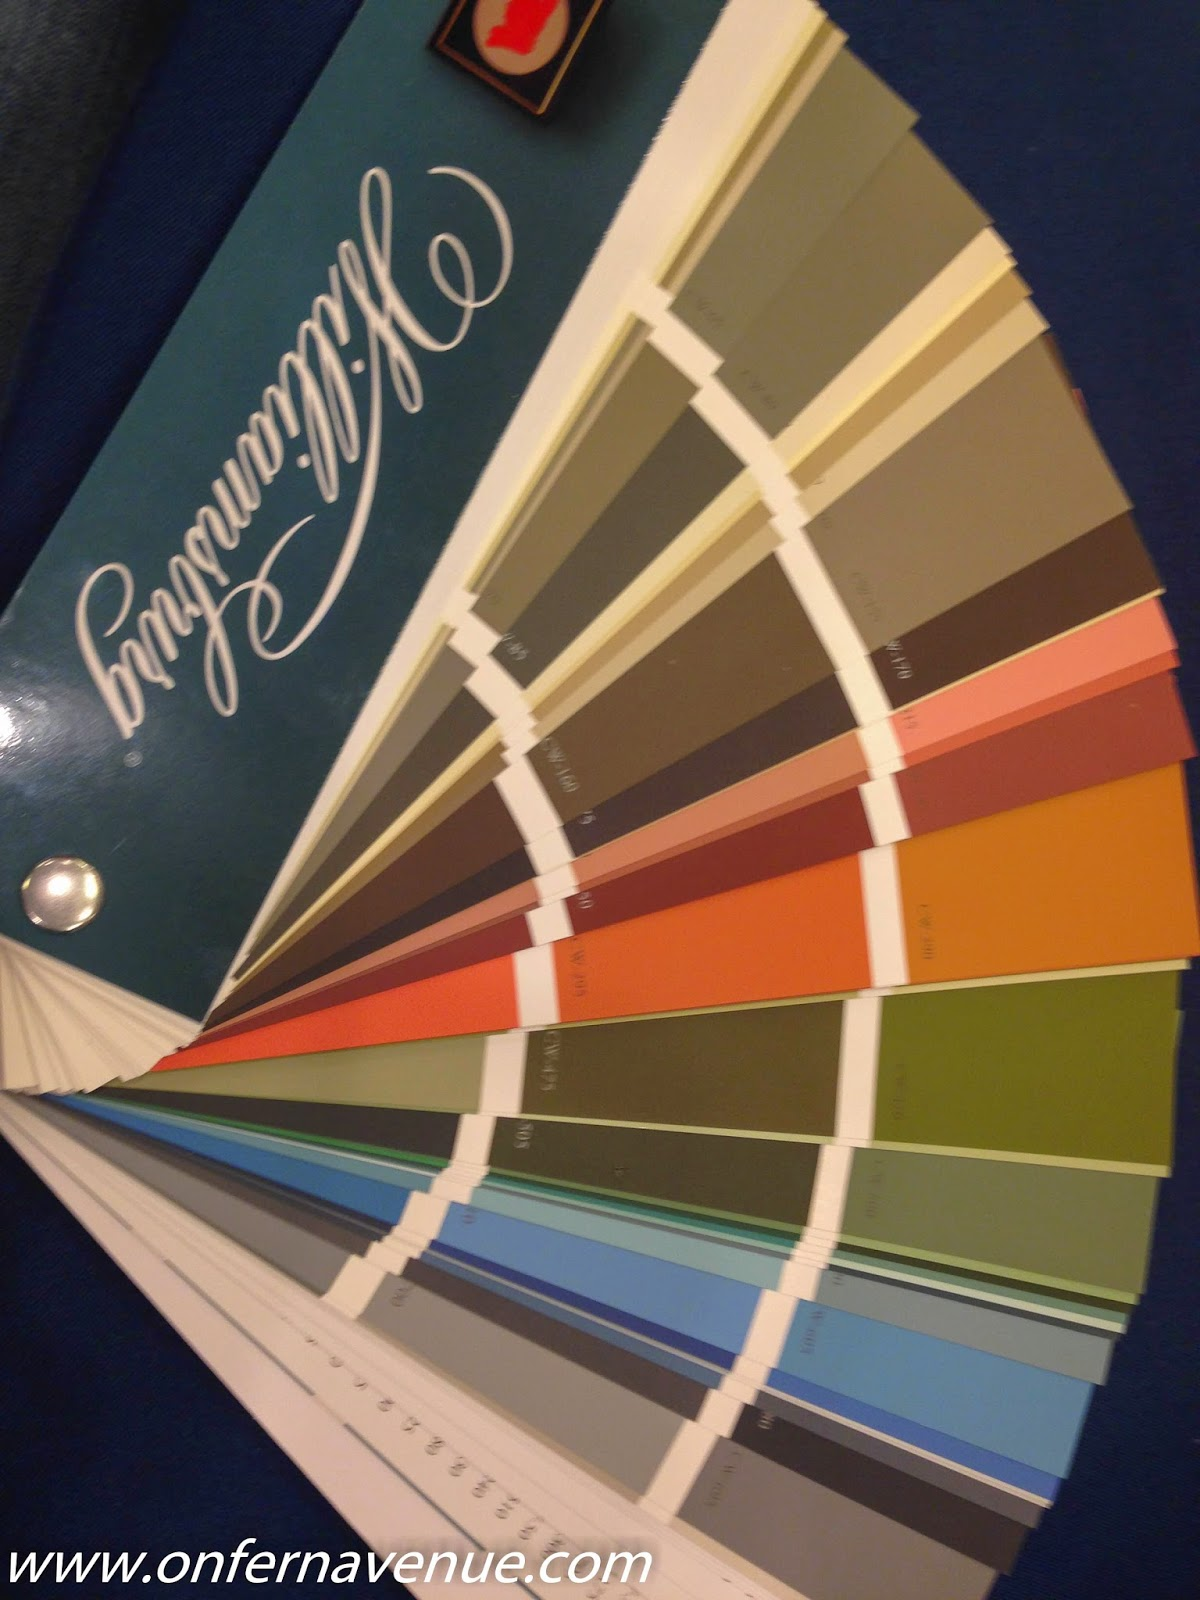 And, Then Where Benjamin Moore U0026 Colonial Williamsburg Teamed Up To Form  The Williamsburg Collection Consisting Of 144 Hues.